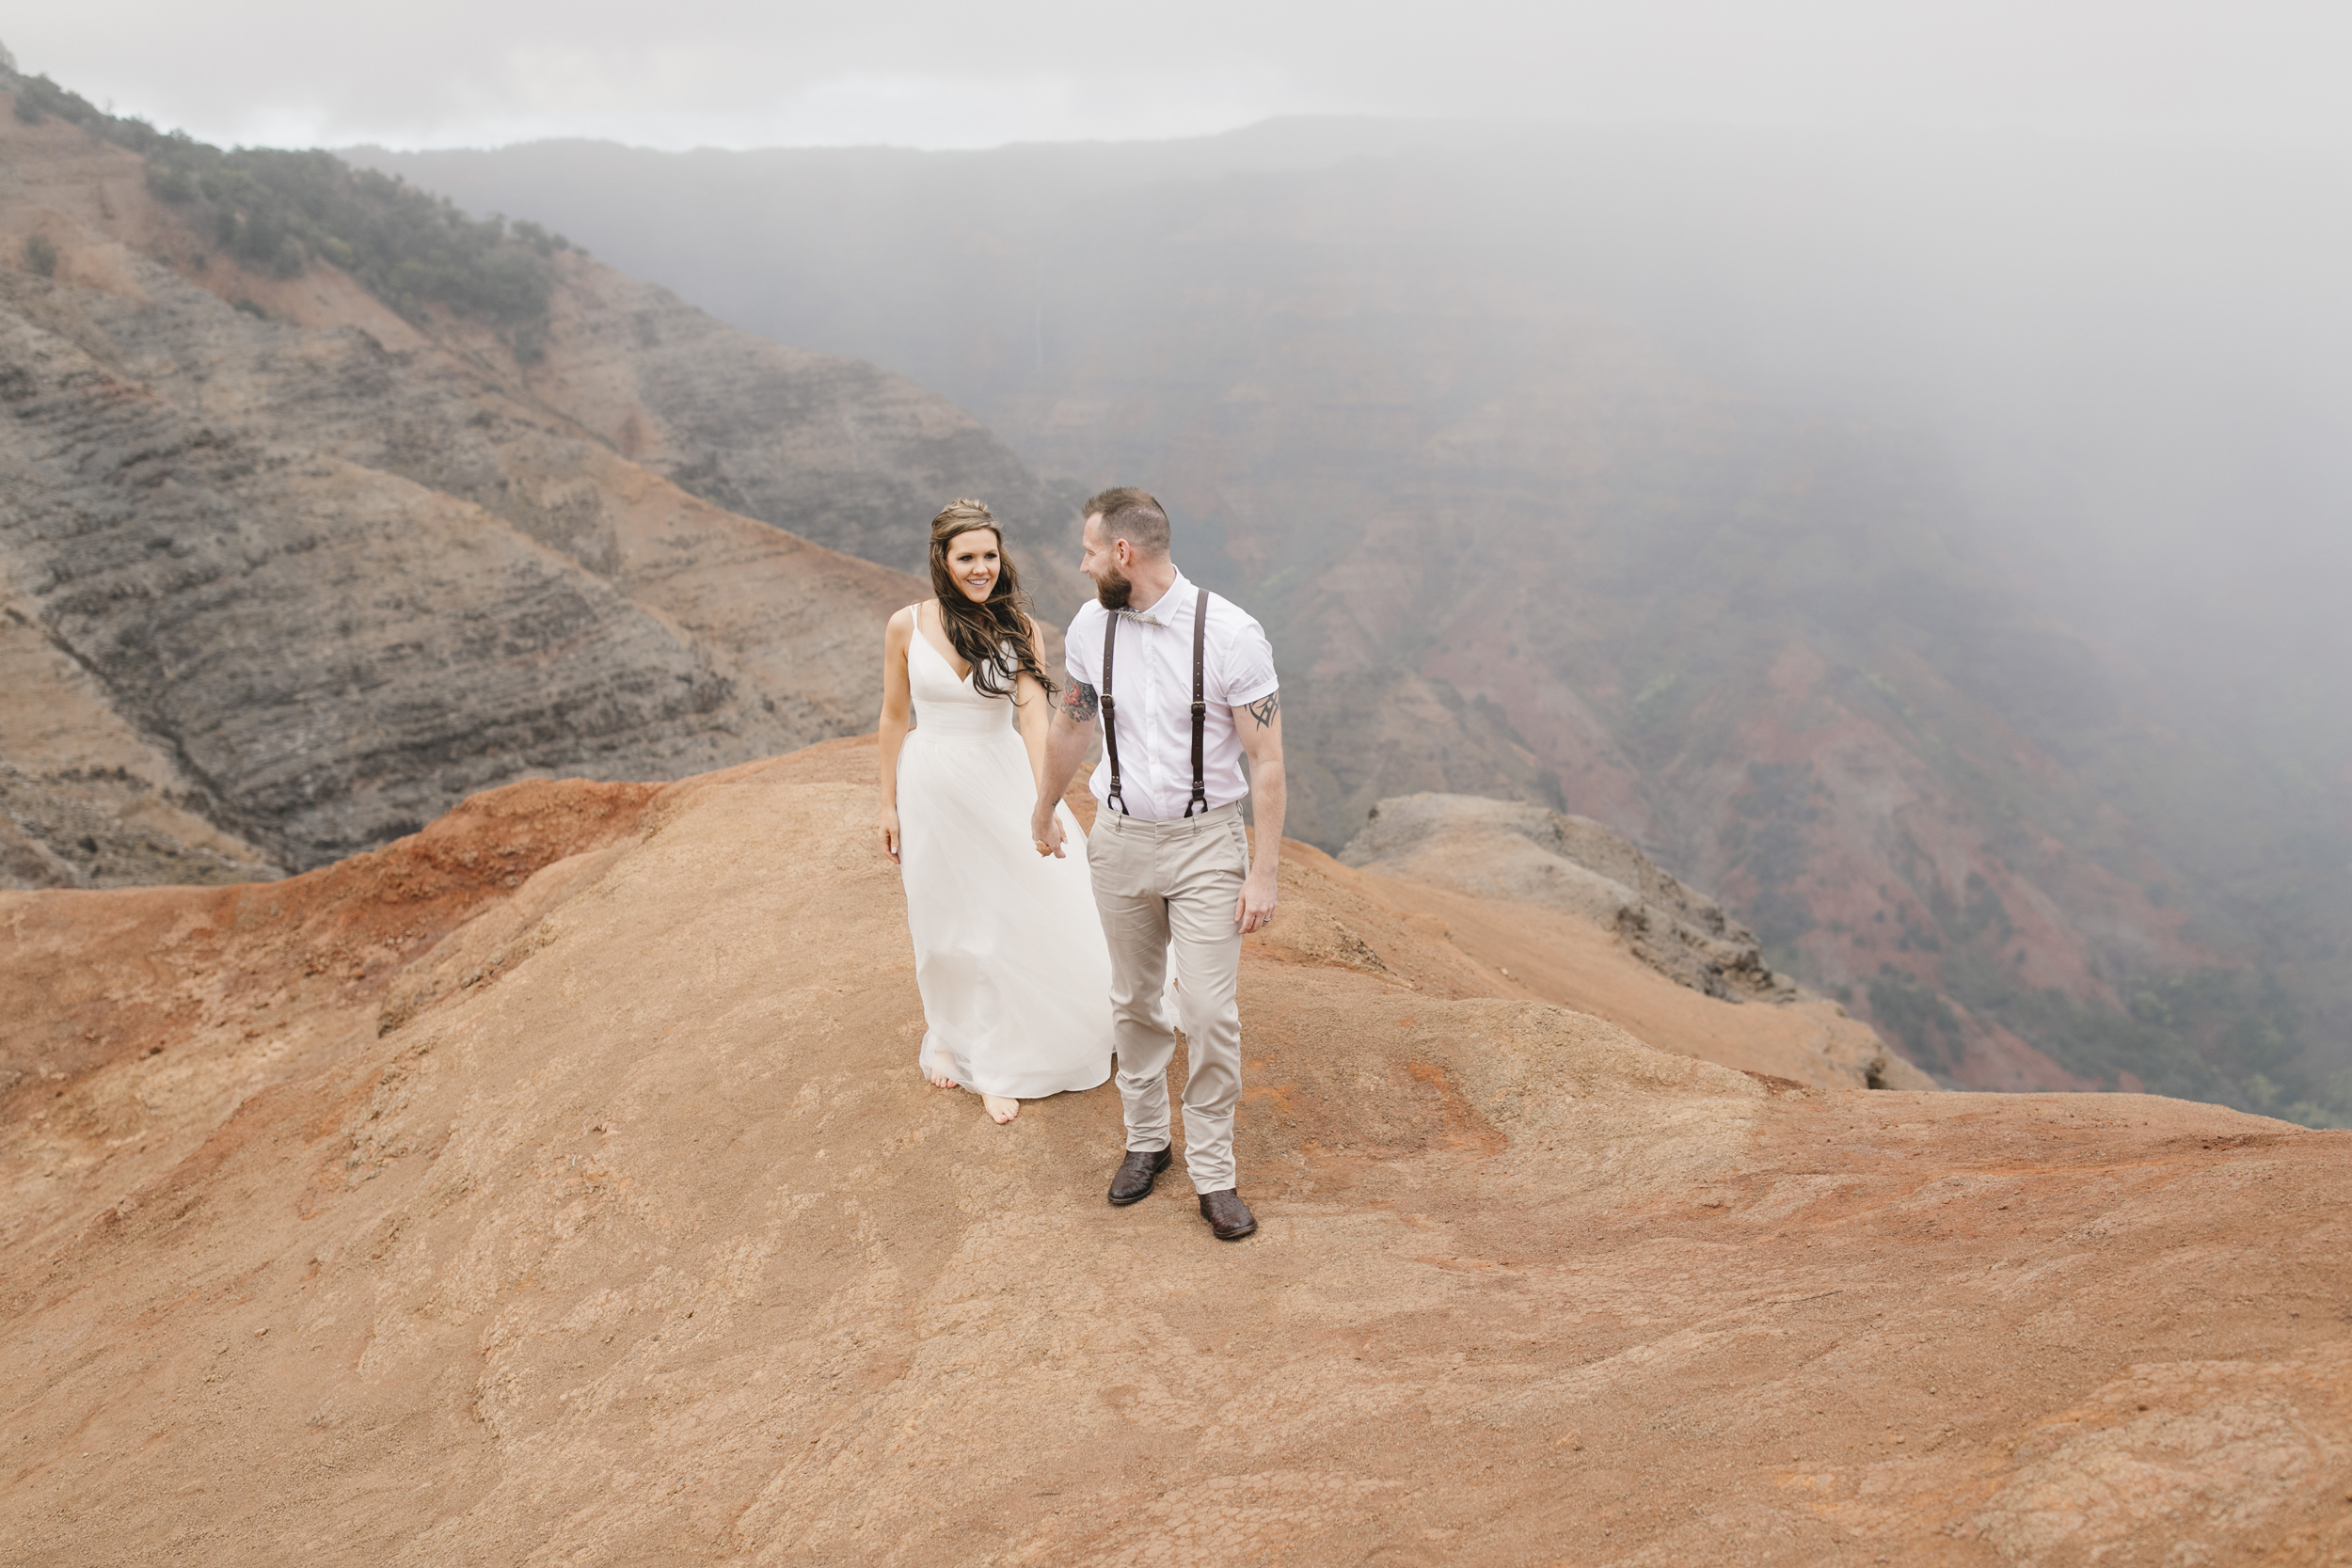 Waimea Canyon wedding ceremony with Kauai elopement photographers Colby and Jess